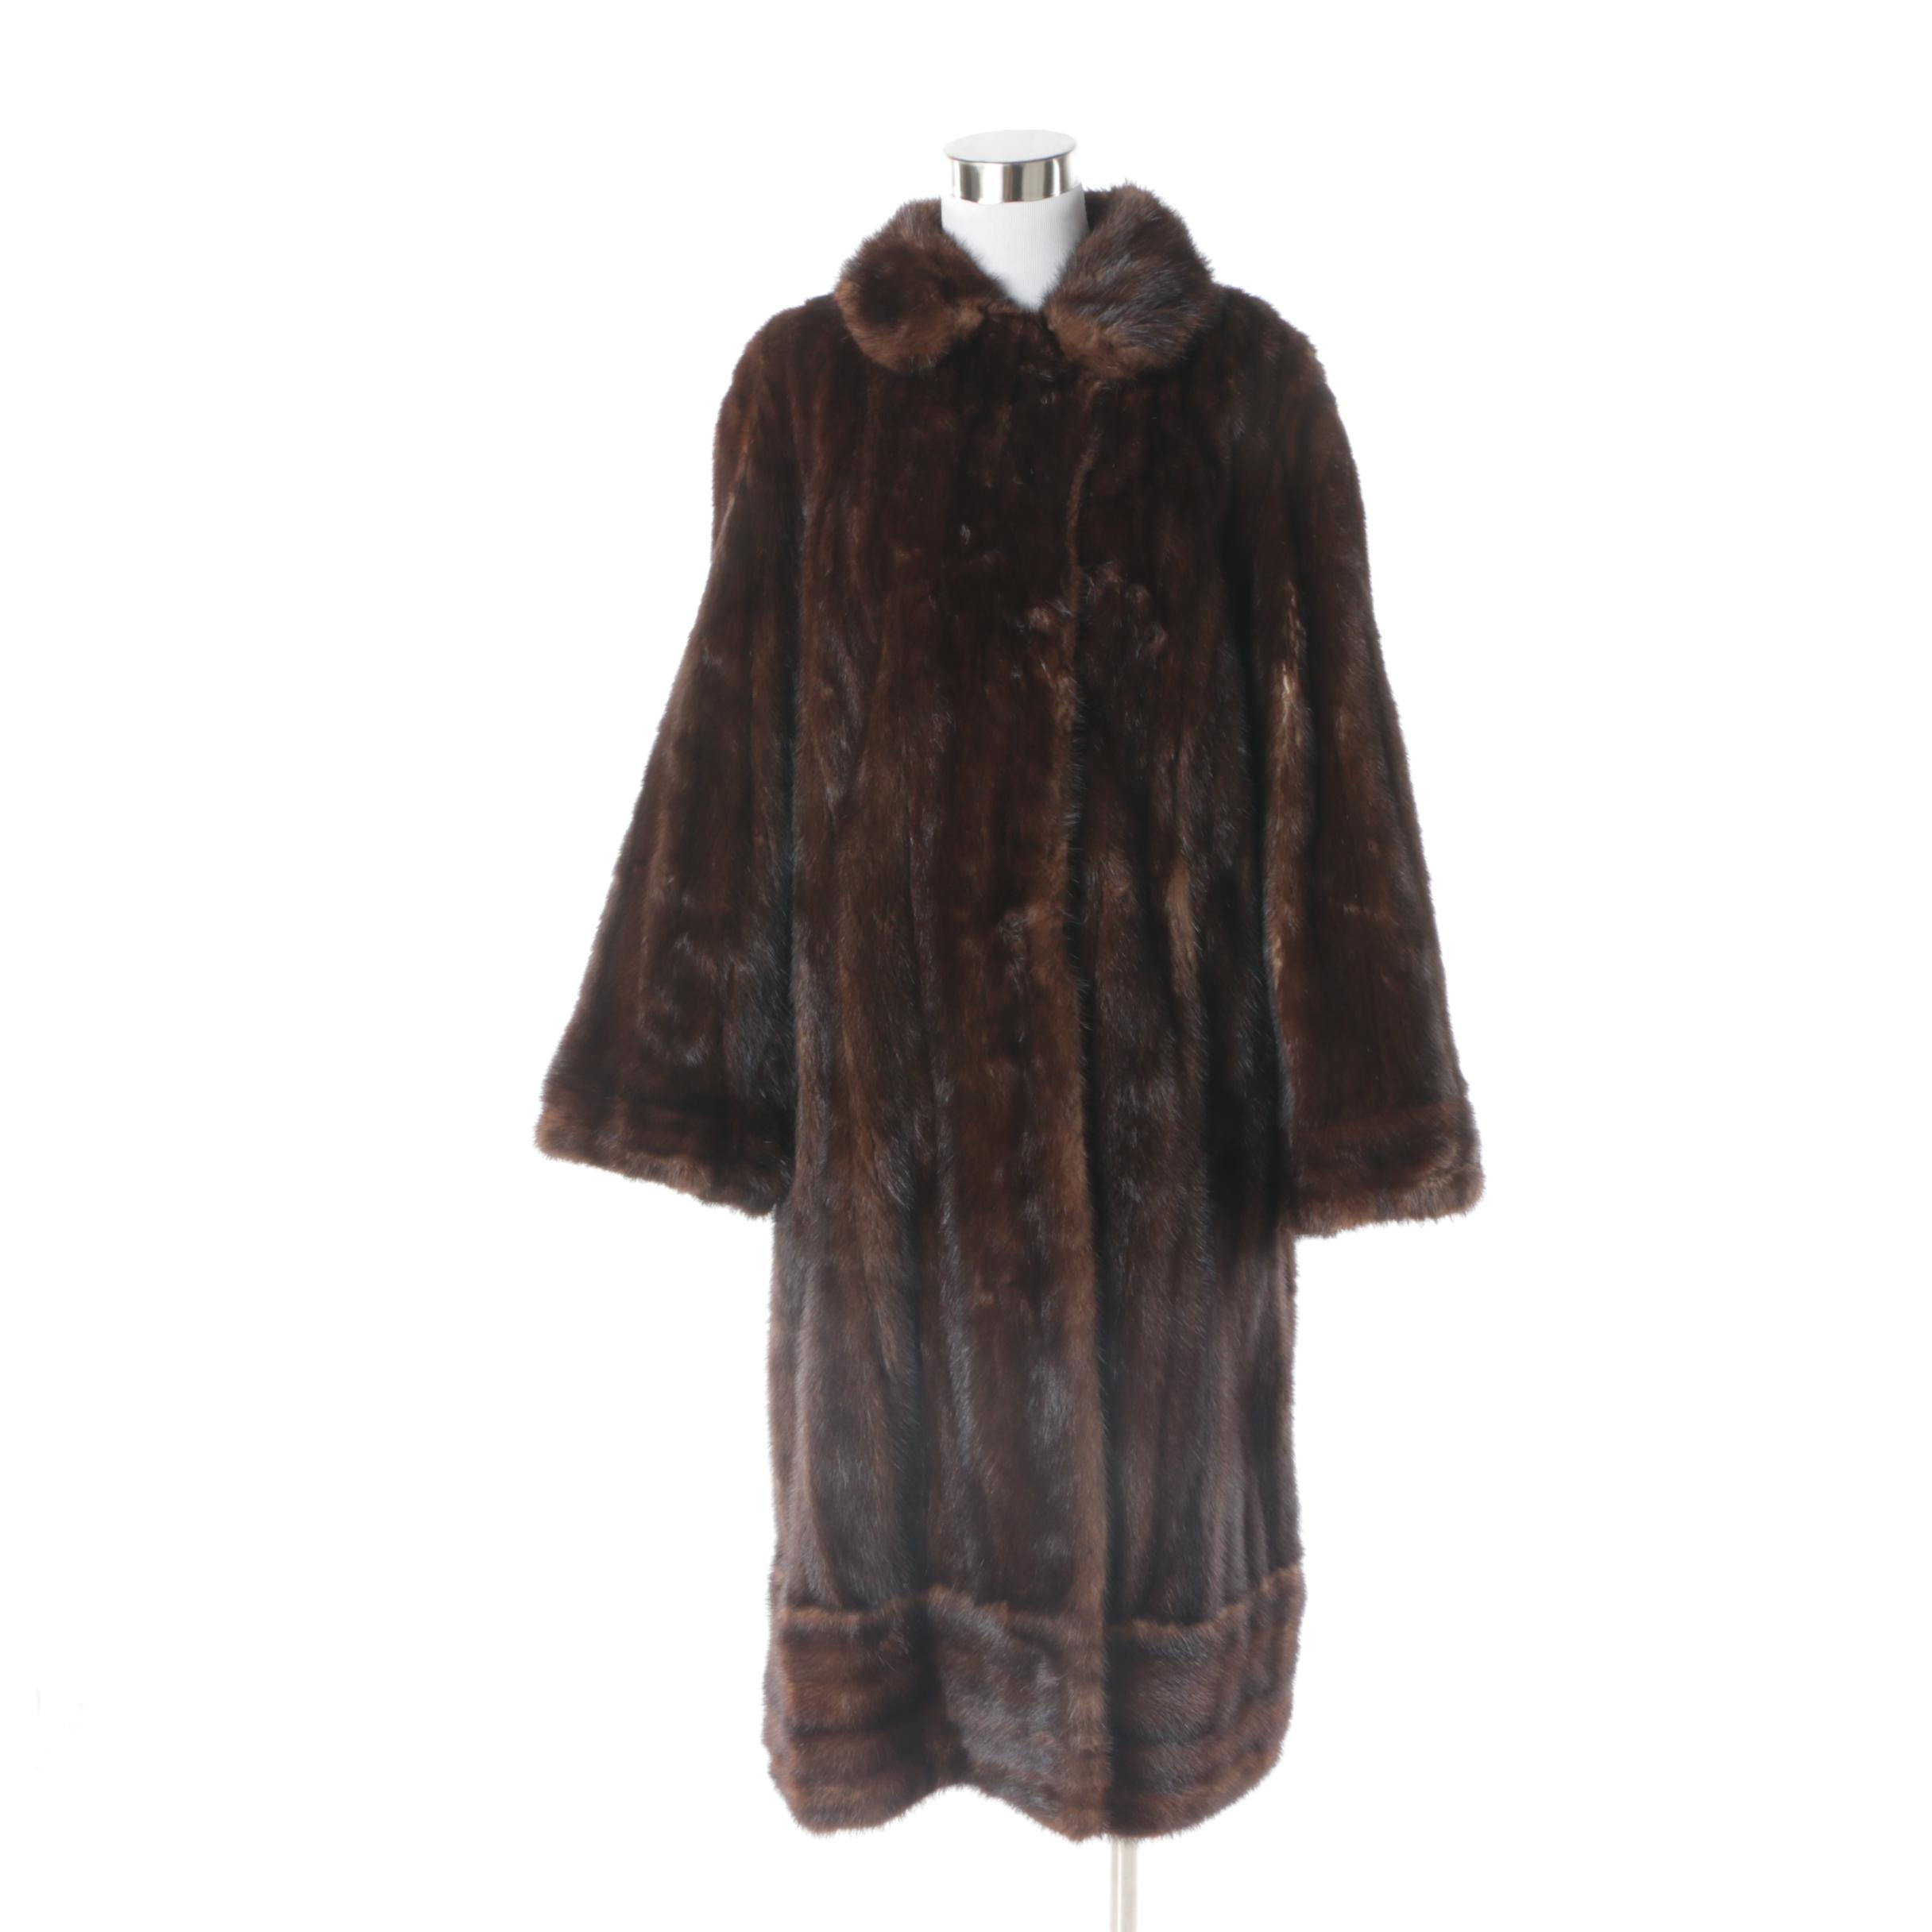 Women's Vintage Dark Brown Mink Fur Coat